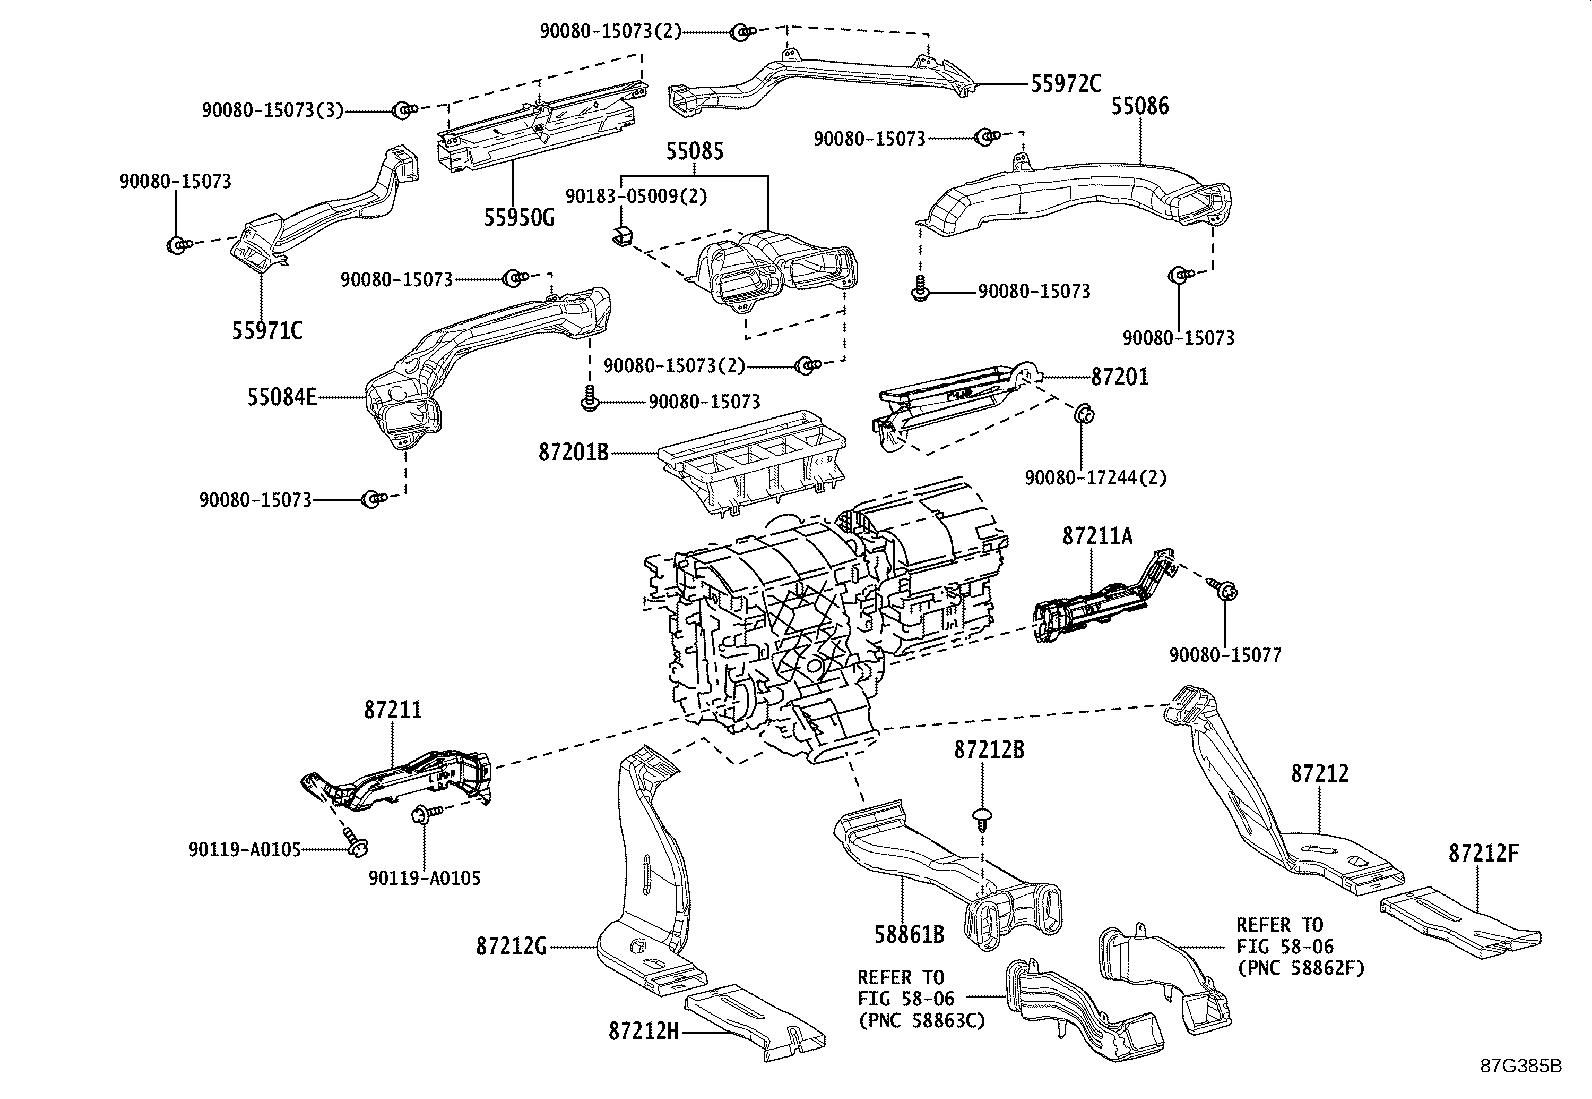 Toyota Camry Control Assembly Air Conditioner Display